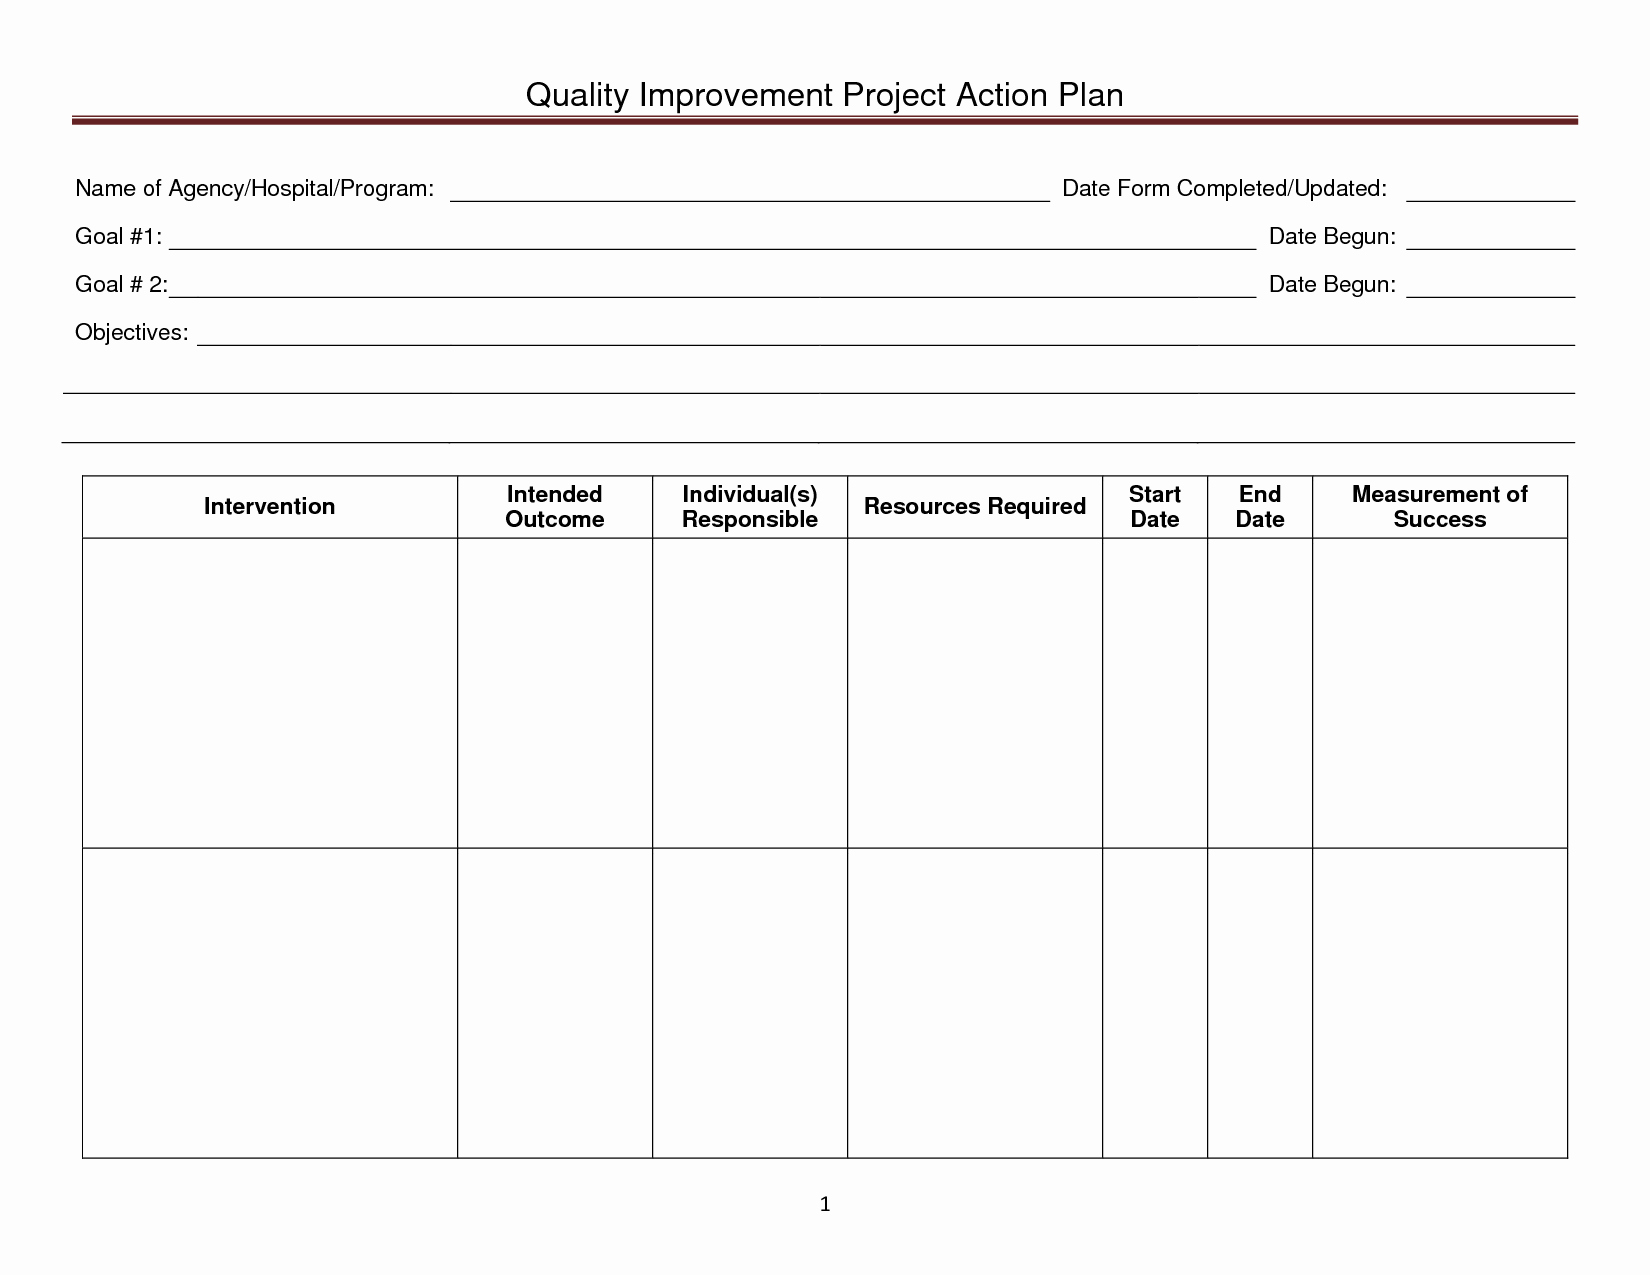 Quality Improvement Plan Template New 20 Brilliant Samples to Help You Create Business Action